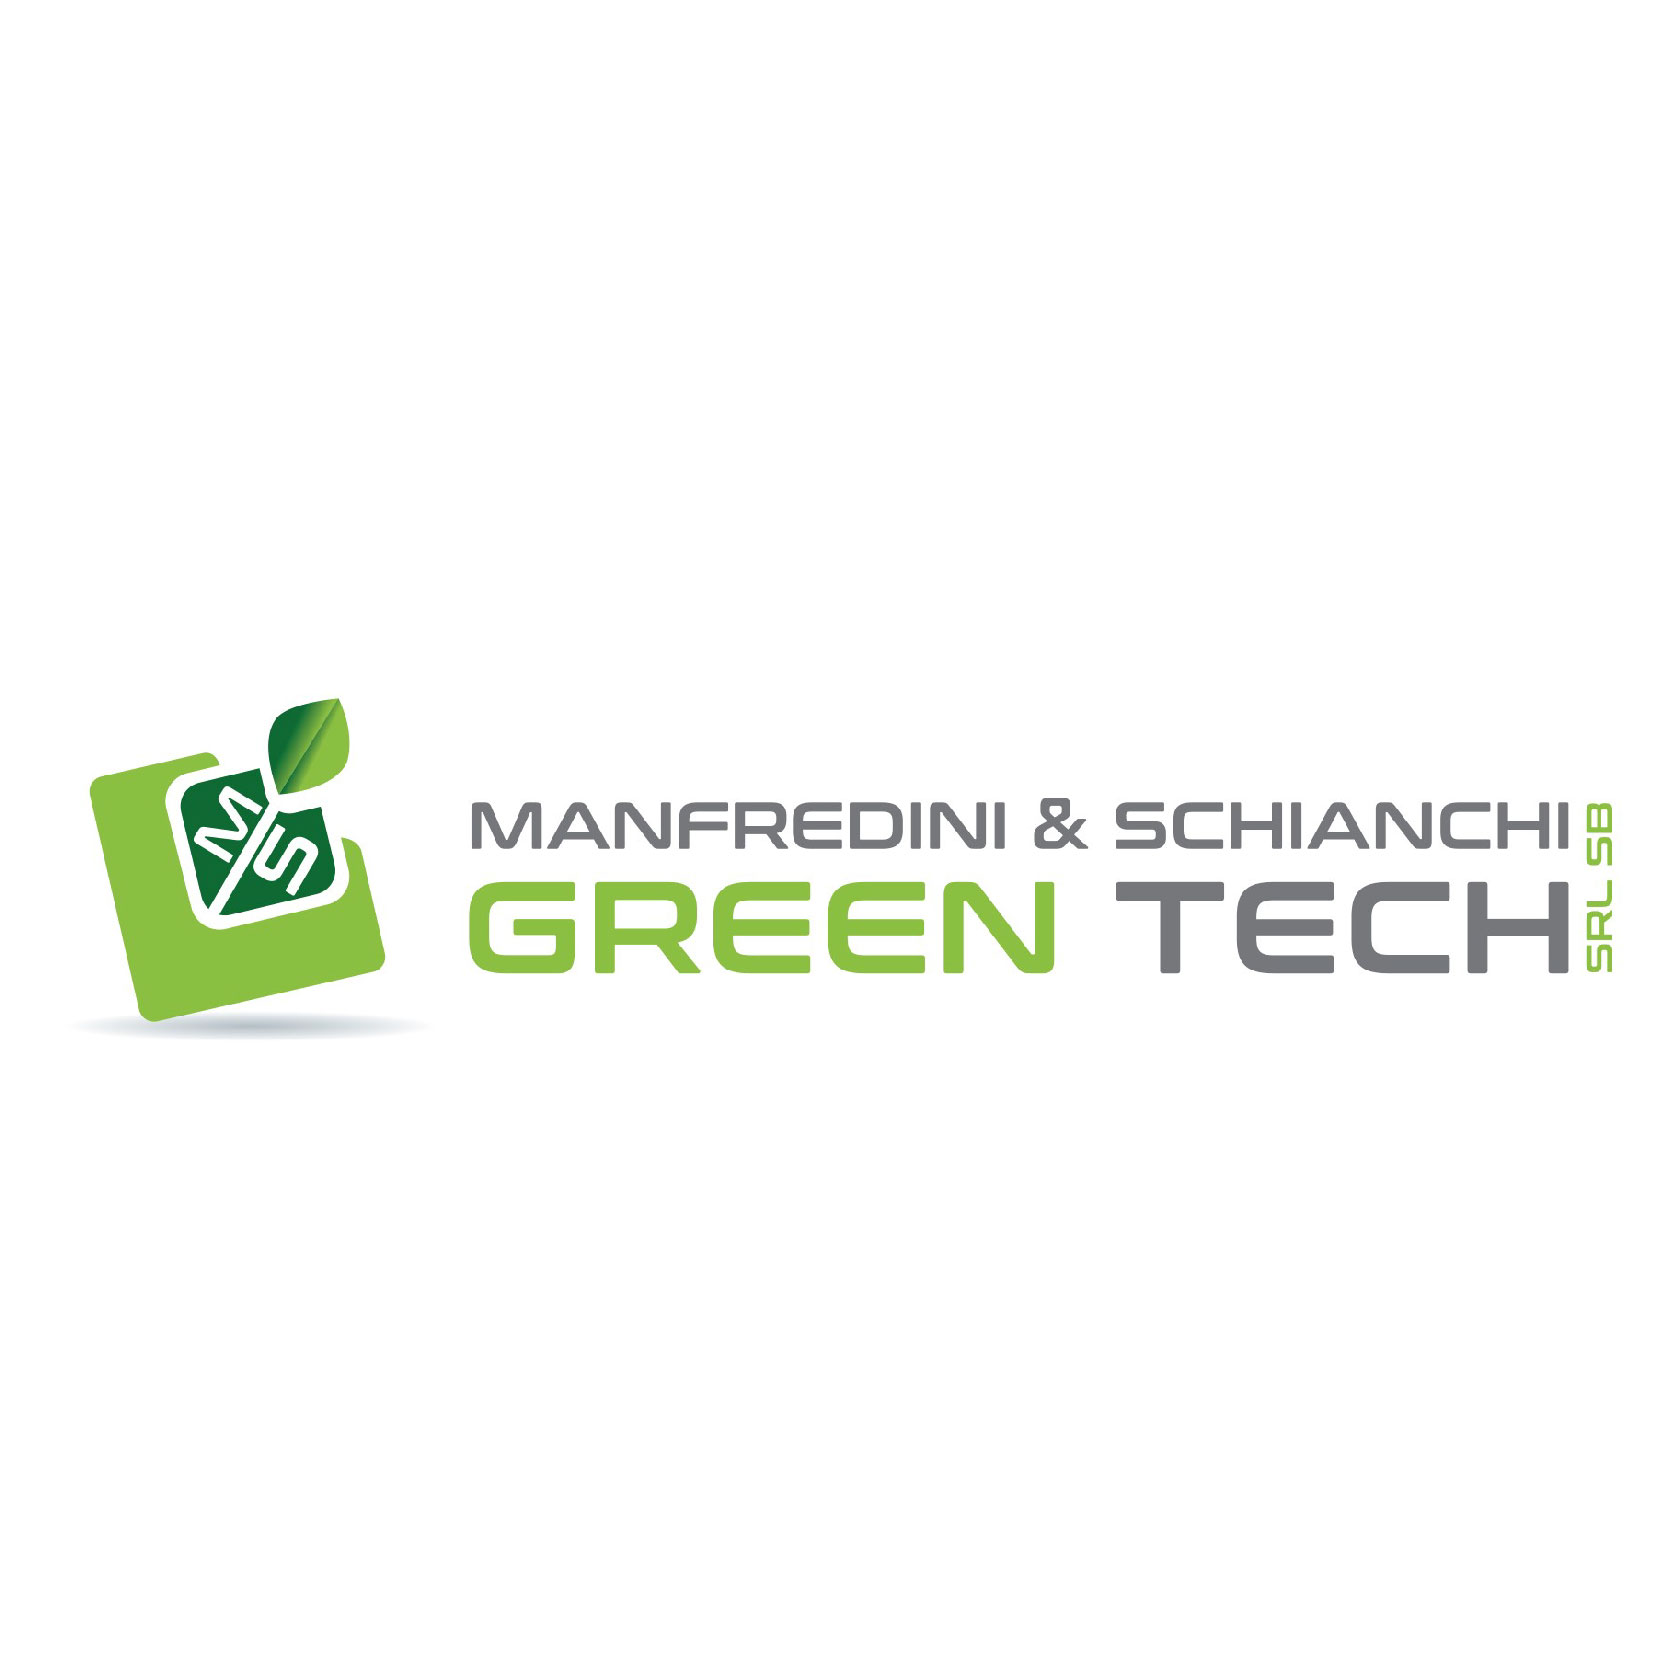 MS Green Tech srl